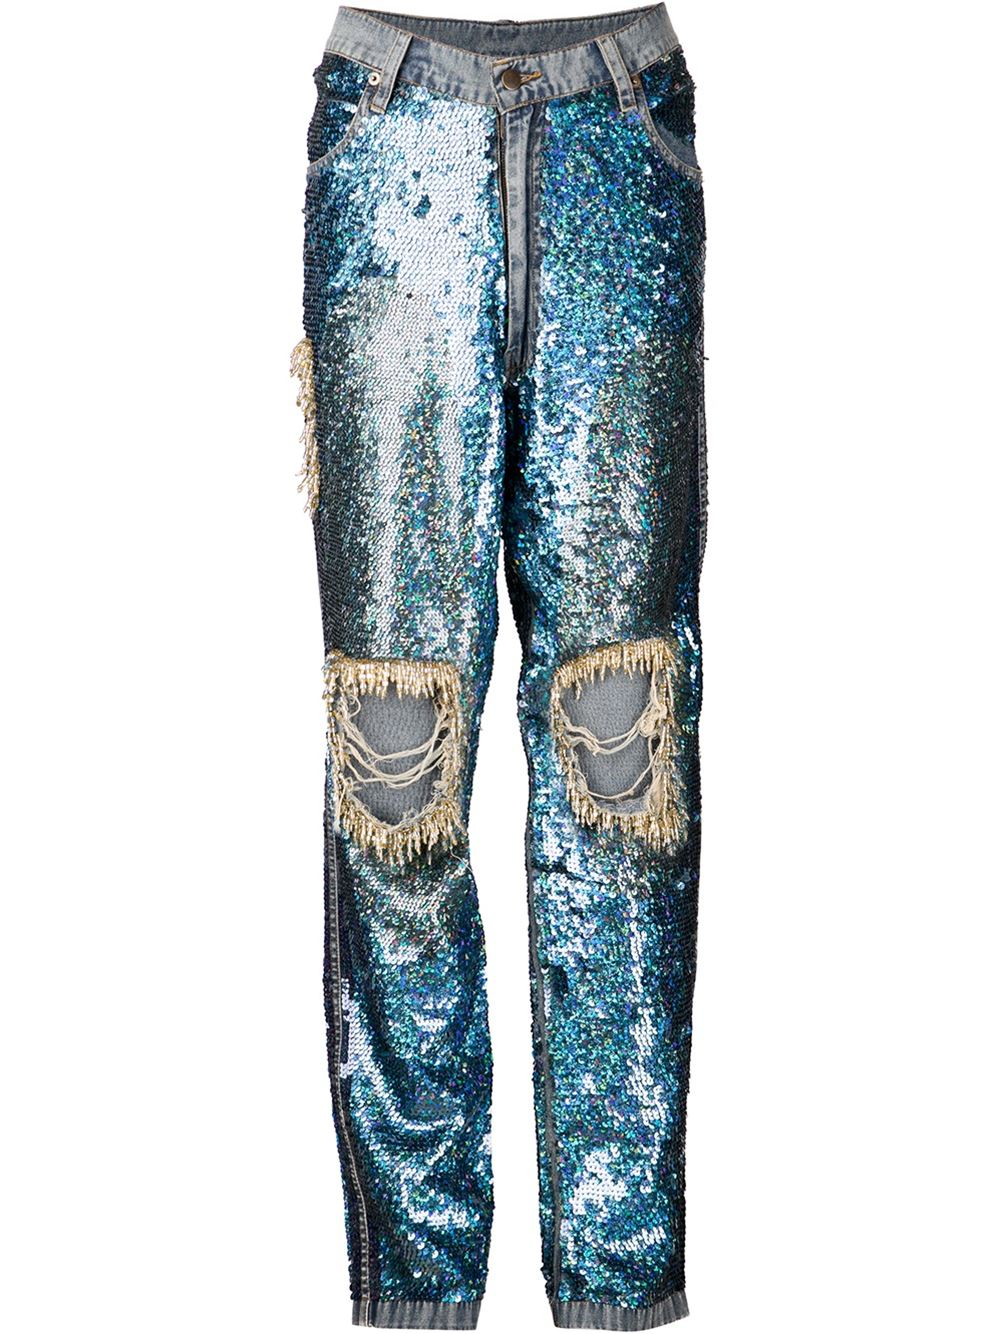 Ashish sequined jeans